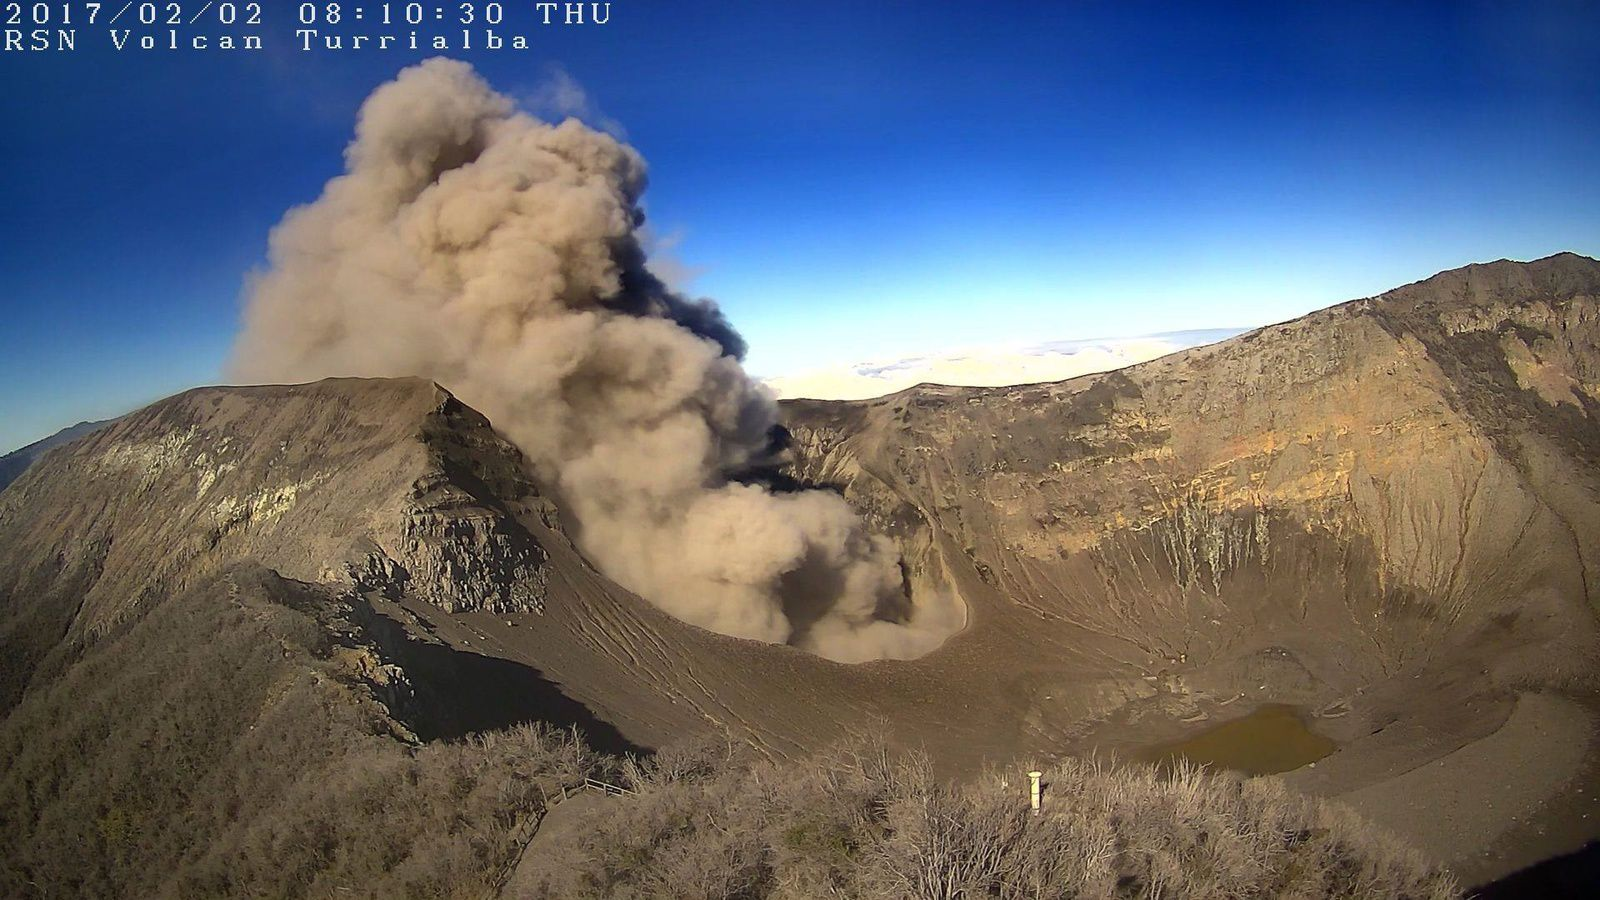 Turrialba - 02.02.2017 / 8h10 - webcam RSN